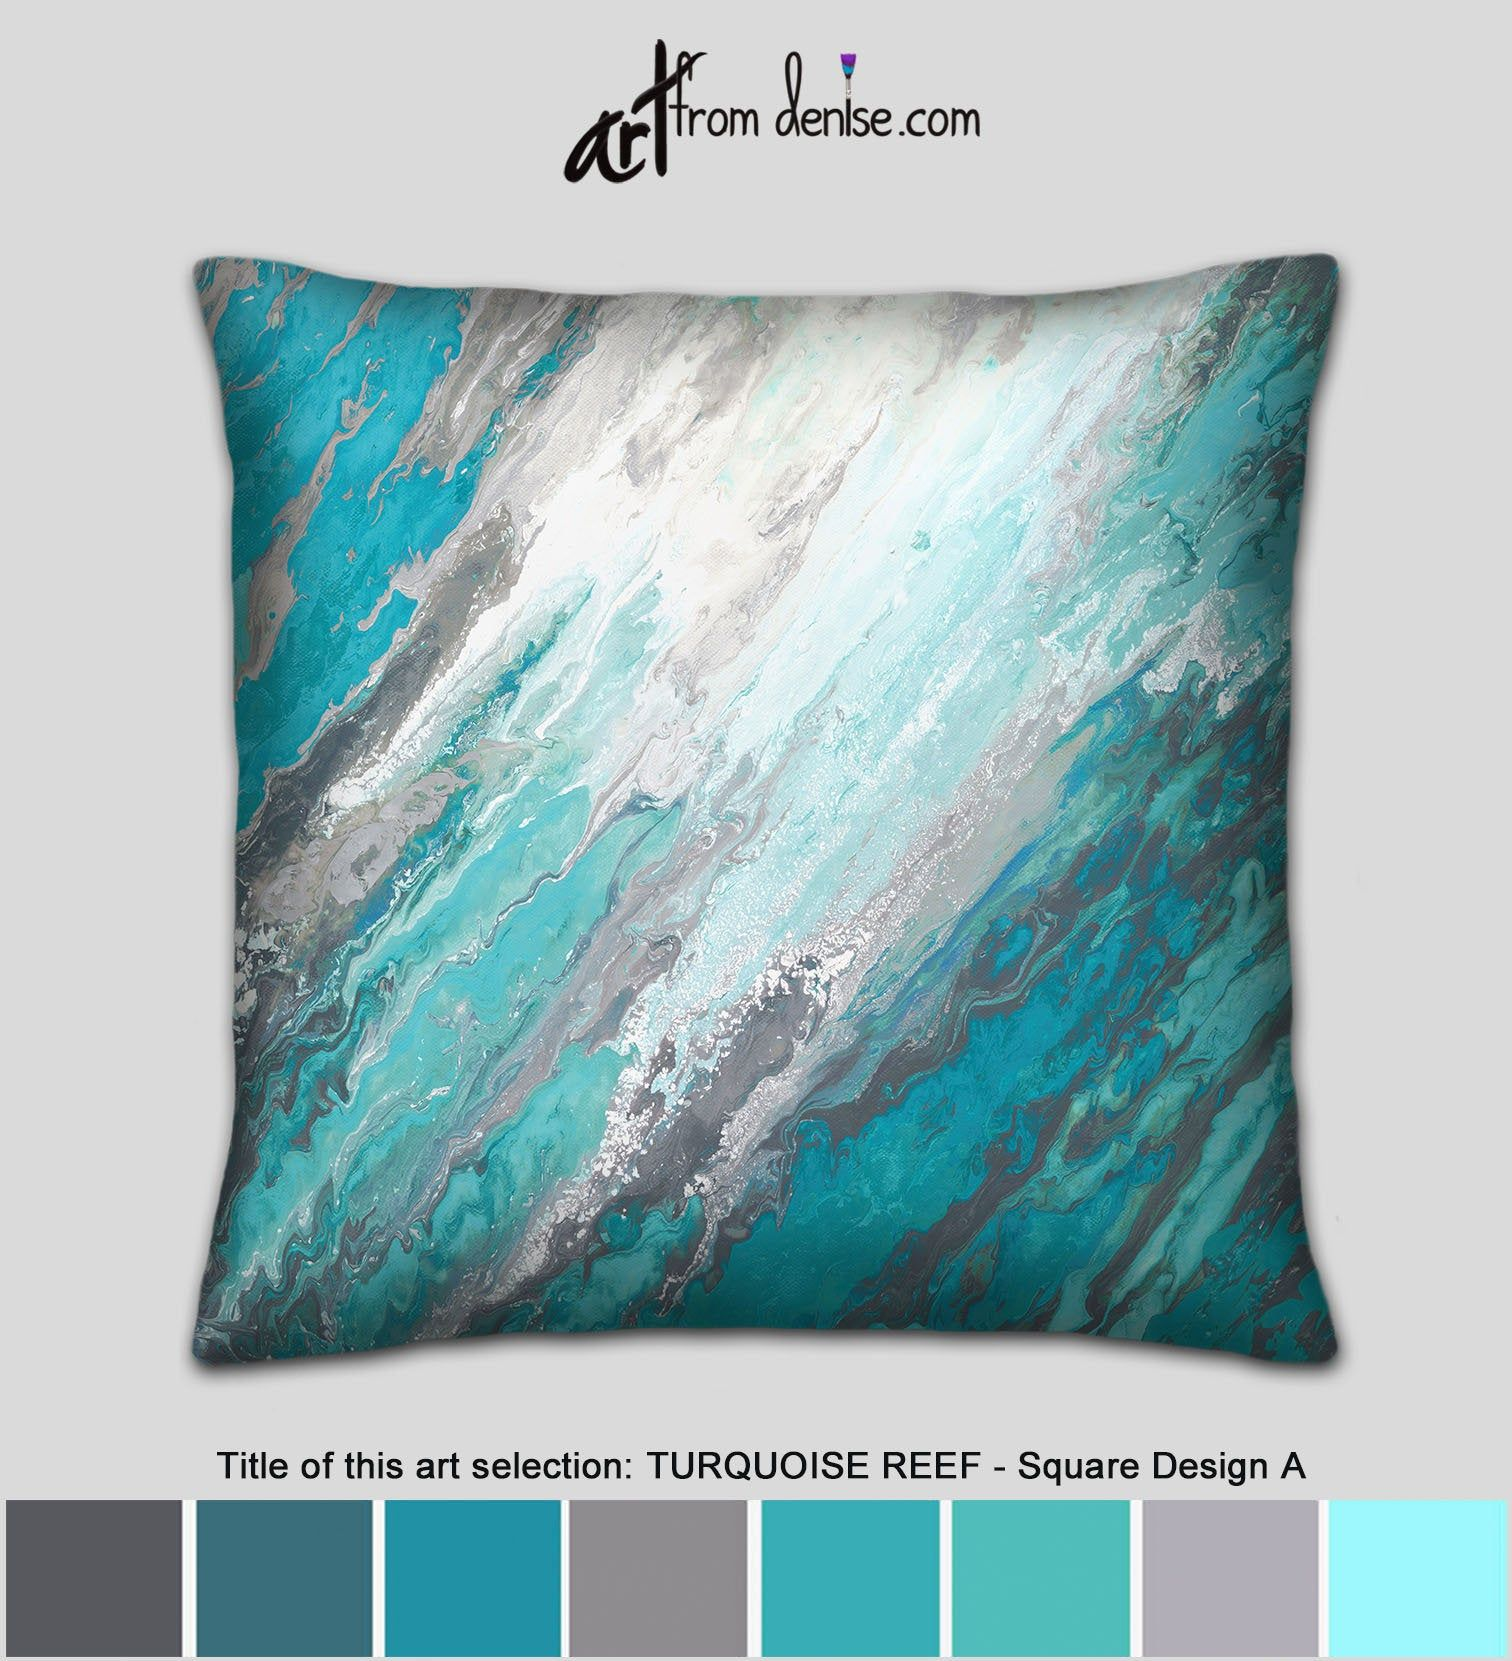 Teal Gray And Turquoise Throw Pillows Or Covers Aqua Blue Etsy Turquoise Throw Pillows Bed Pillows Decorative Throw Pillows